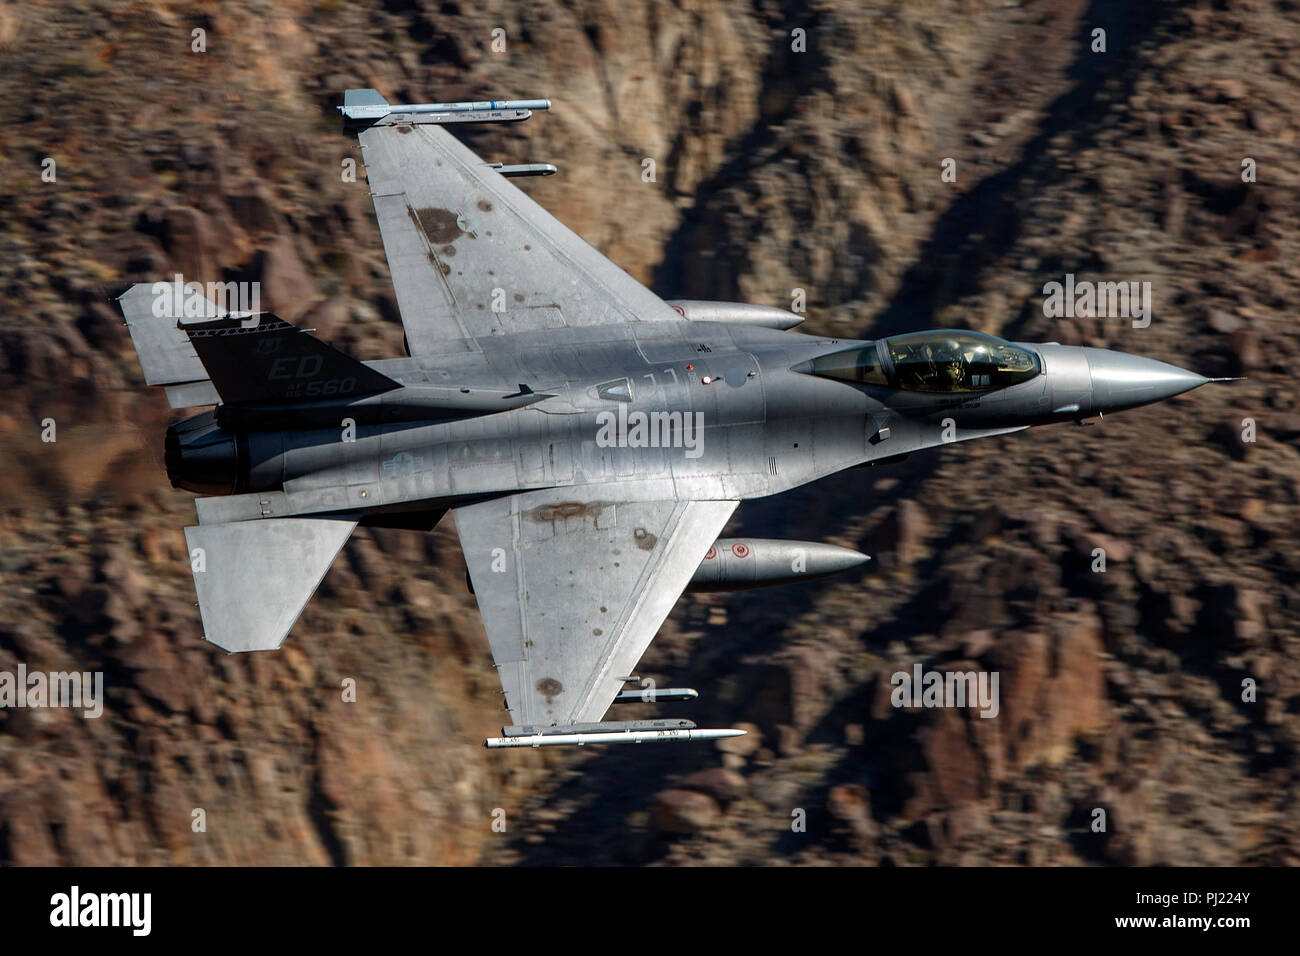 United States Air Force General Dynamics F-16C Fighting Falcon Block 30B (85-1560) vole bas niveau sur la transition par Star Wars Jedi Canyon / Rainbow Canyon, Death Valley National Park, Panamint Springs, California, United States of America Banque D'Images